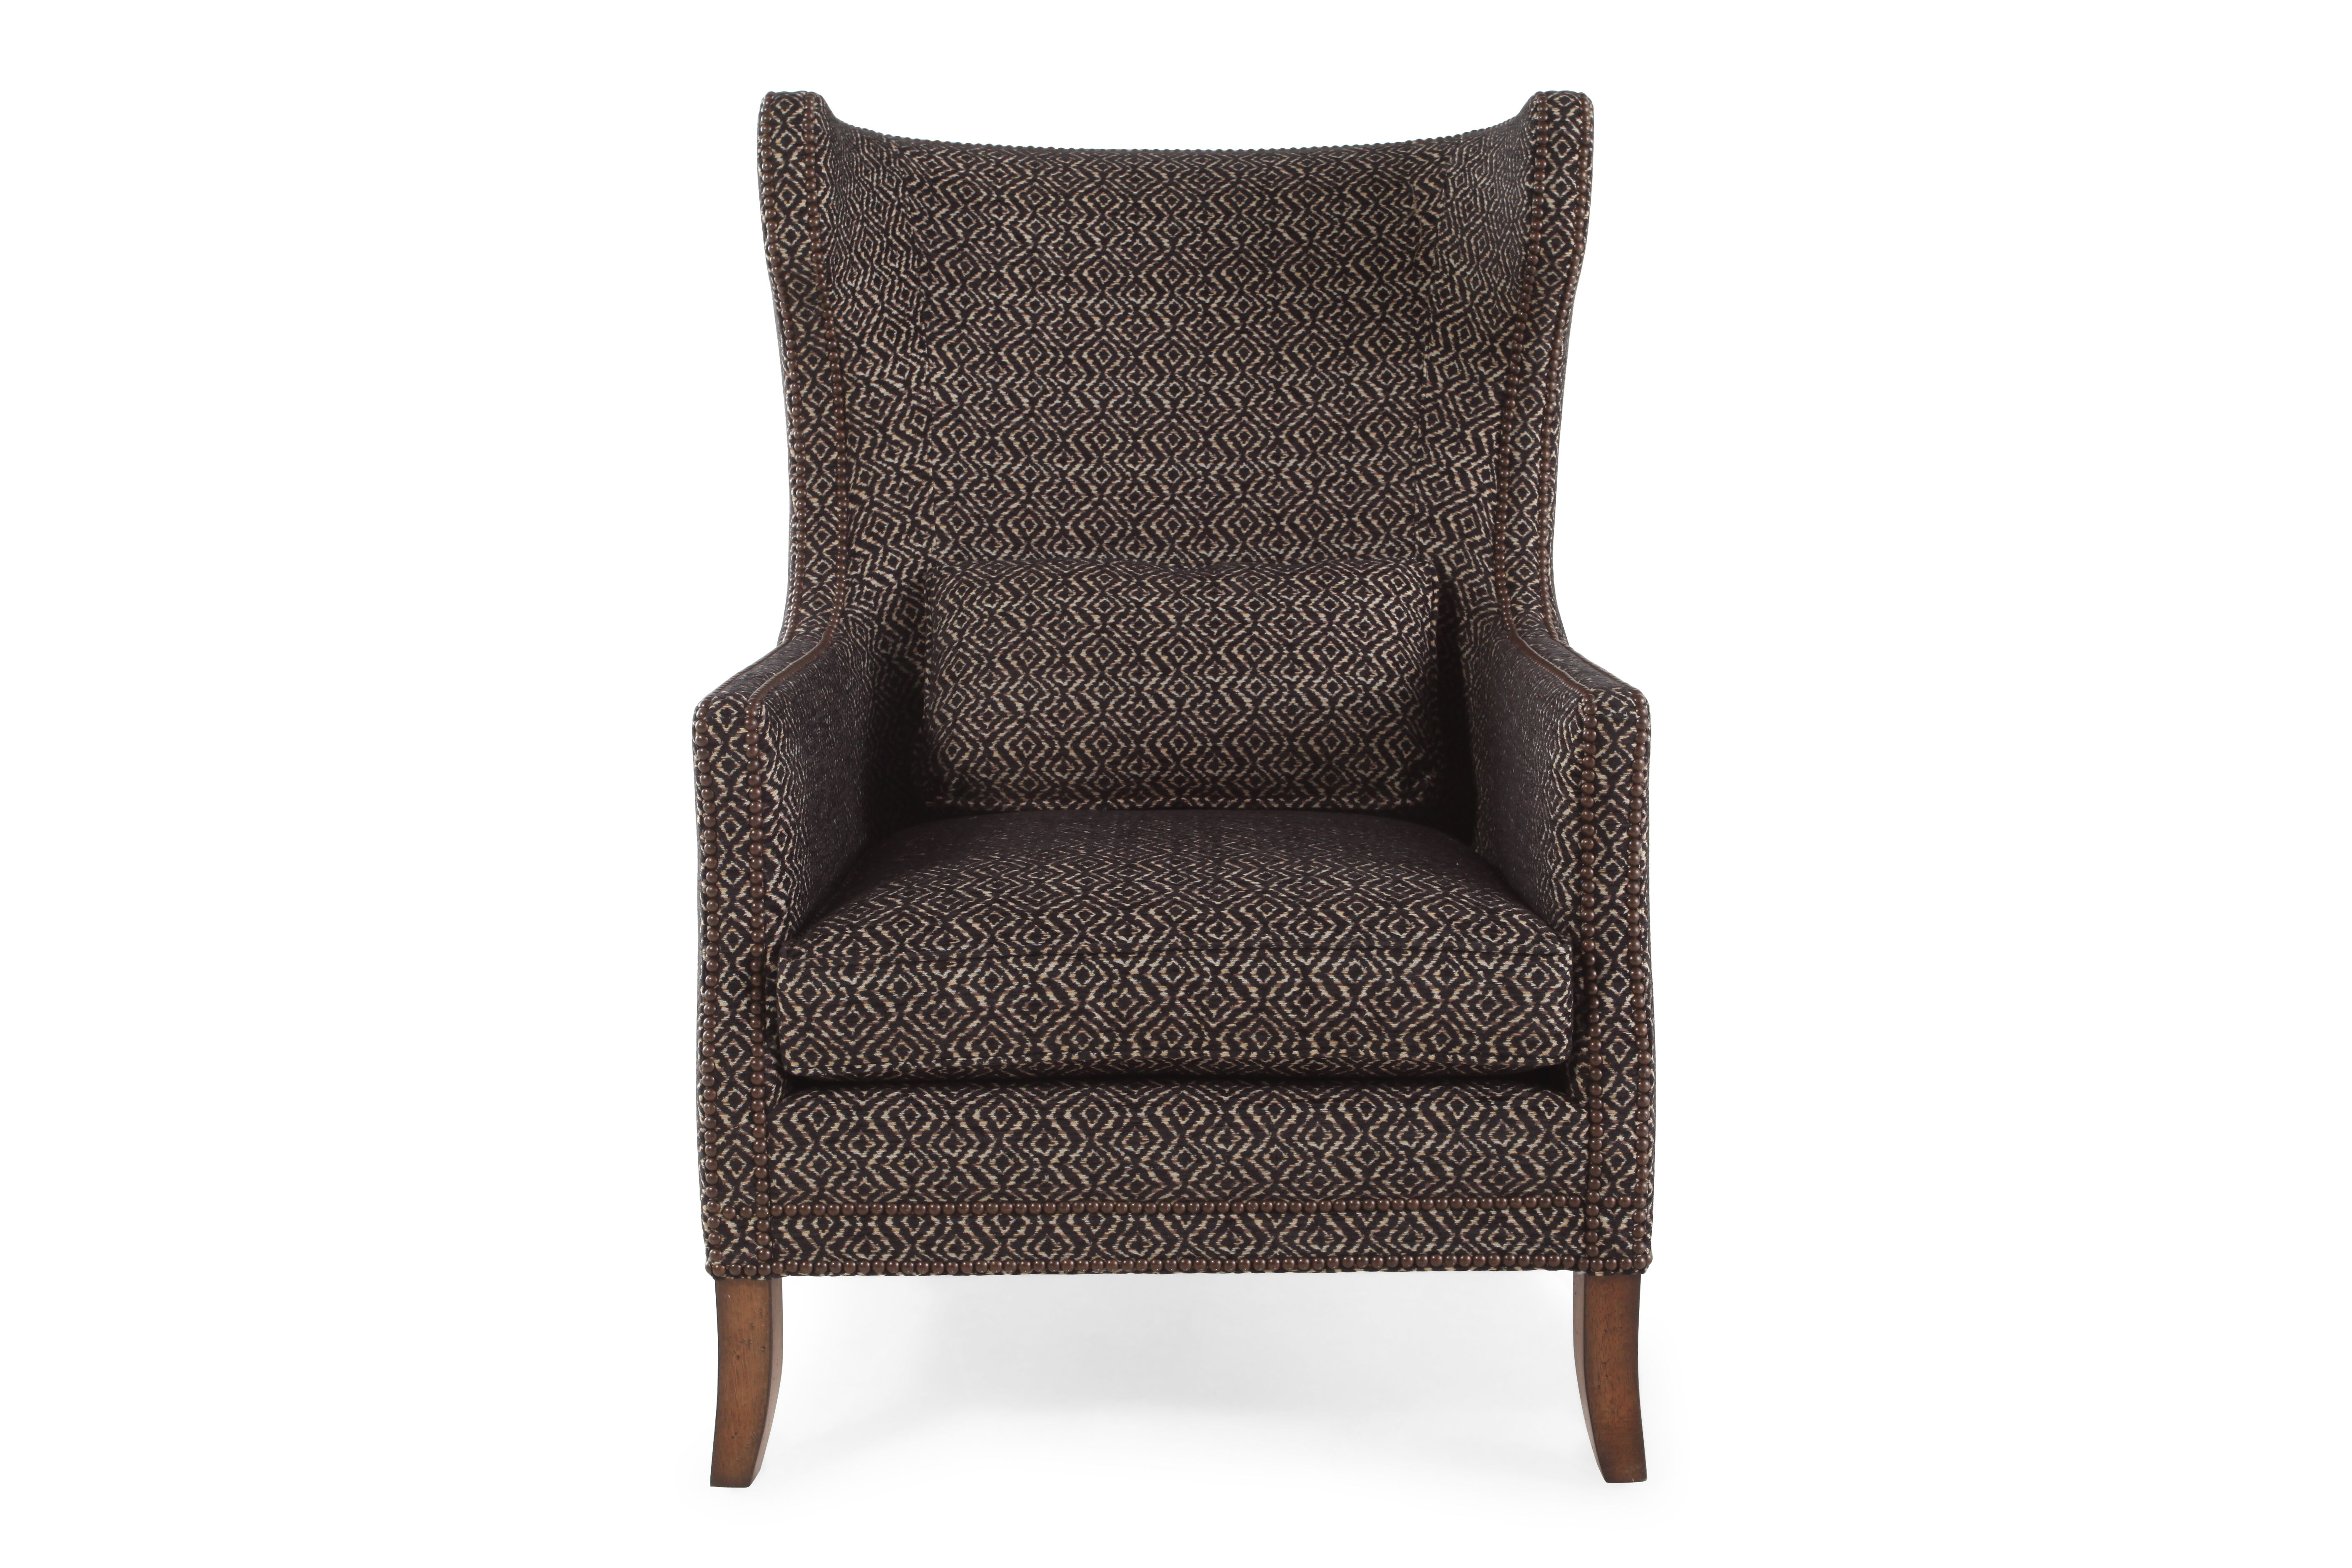 Geometric Patterned European Classic 31 Chair in Cocoa